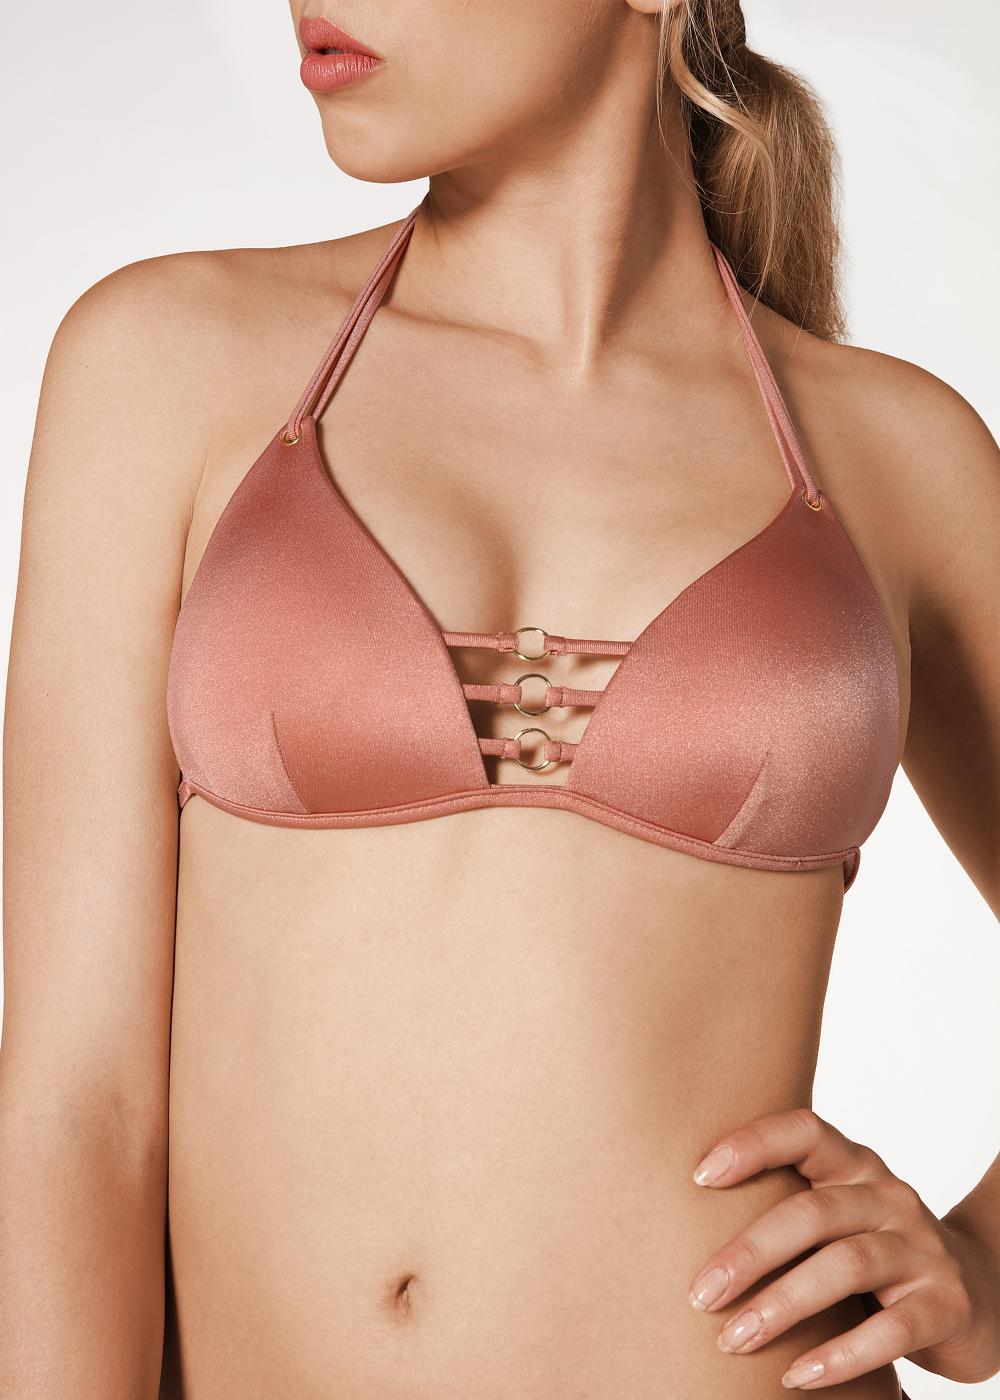 Deborah triangle bikini top with rings